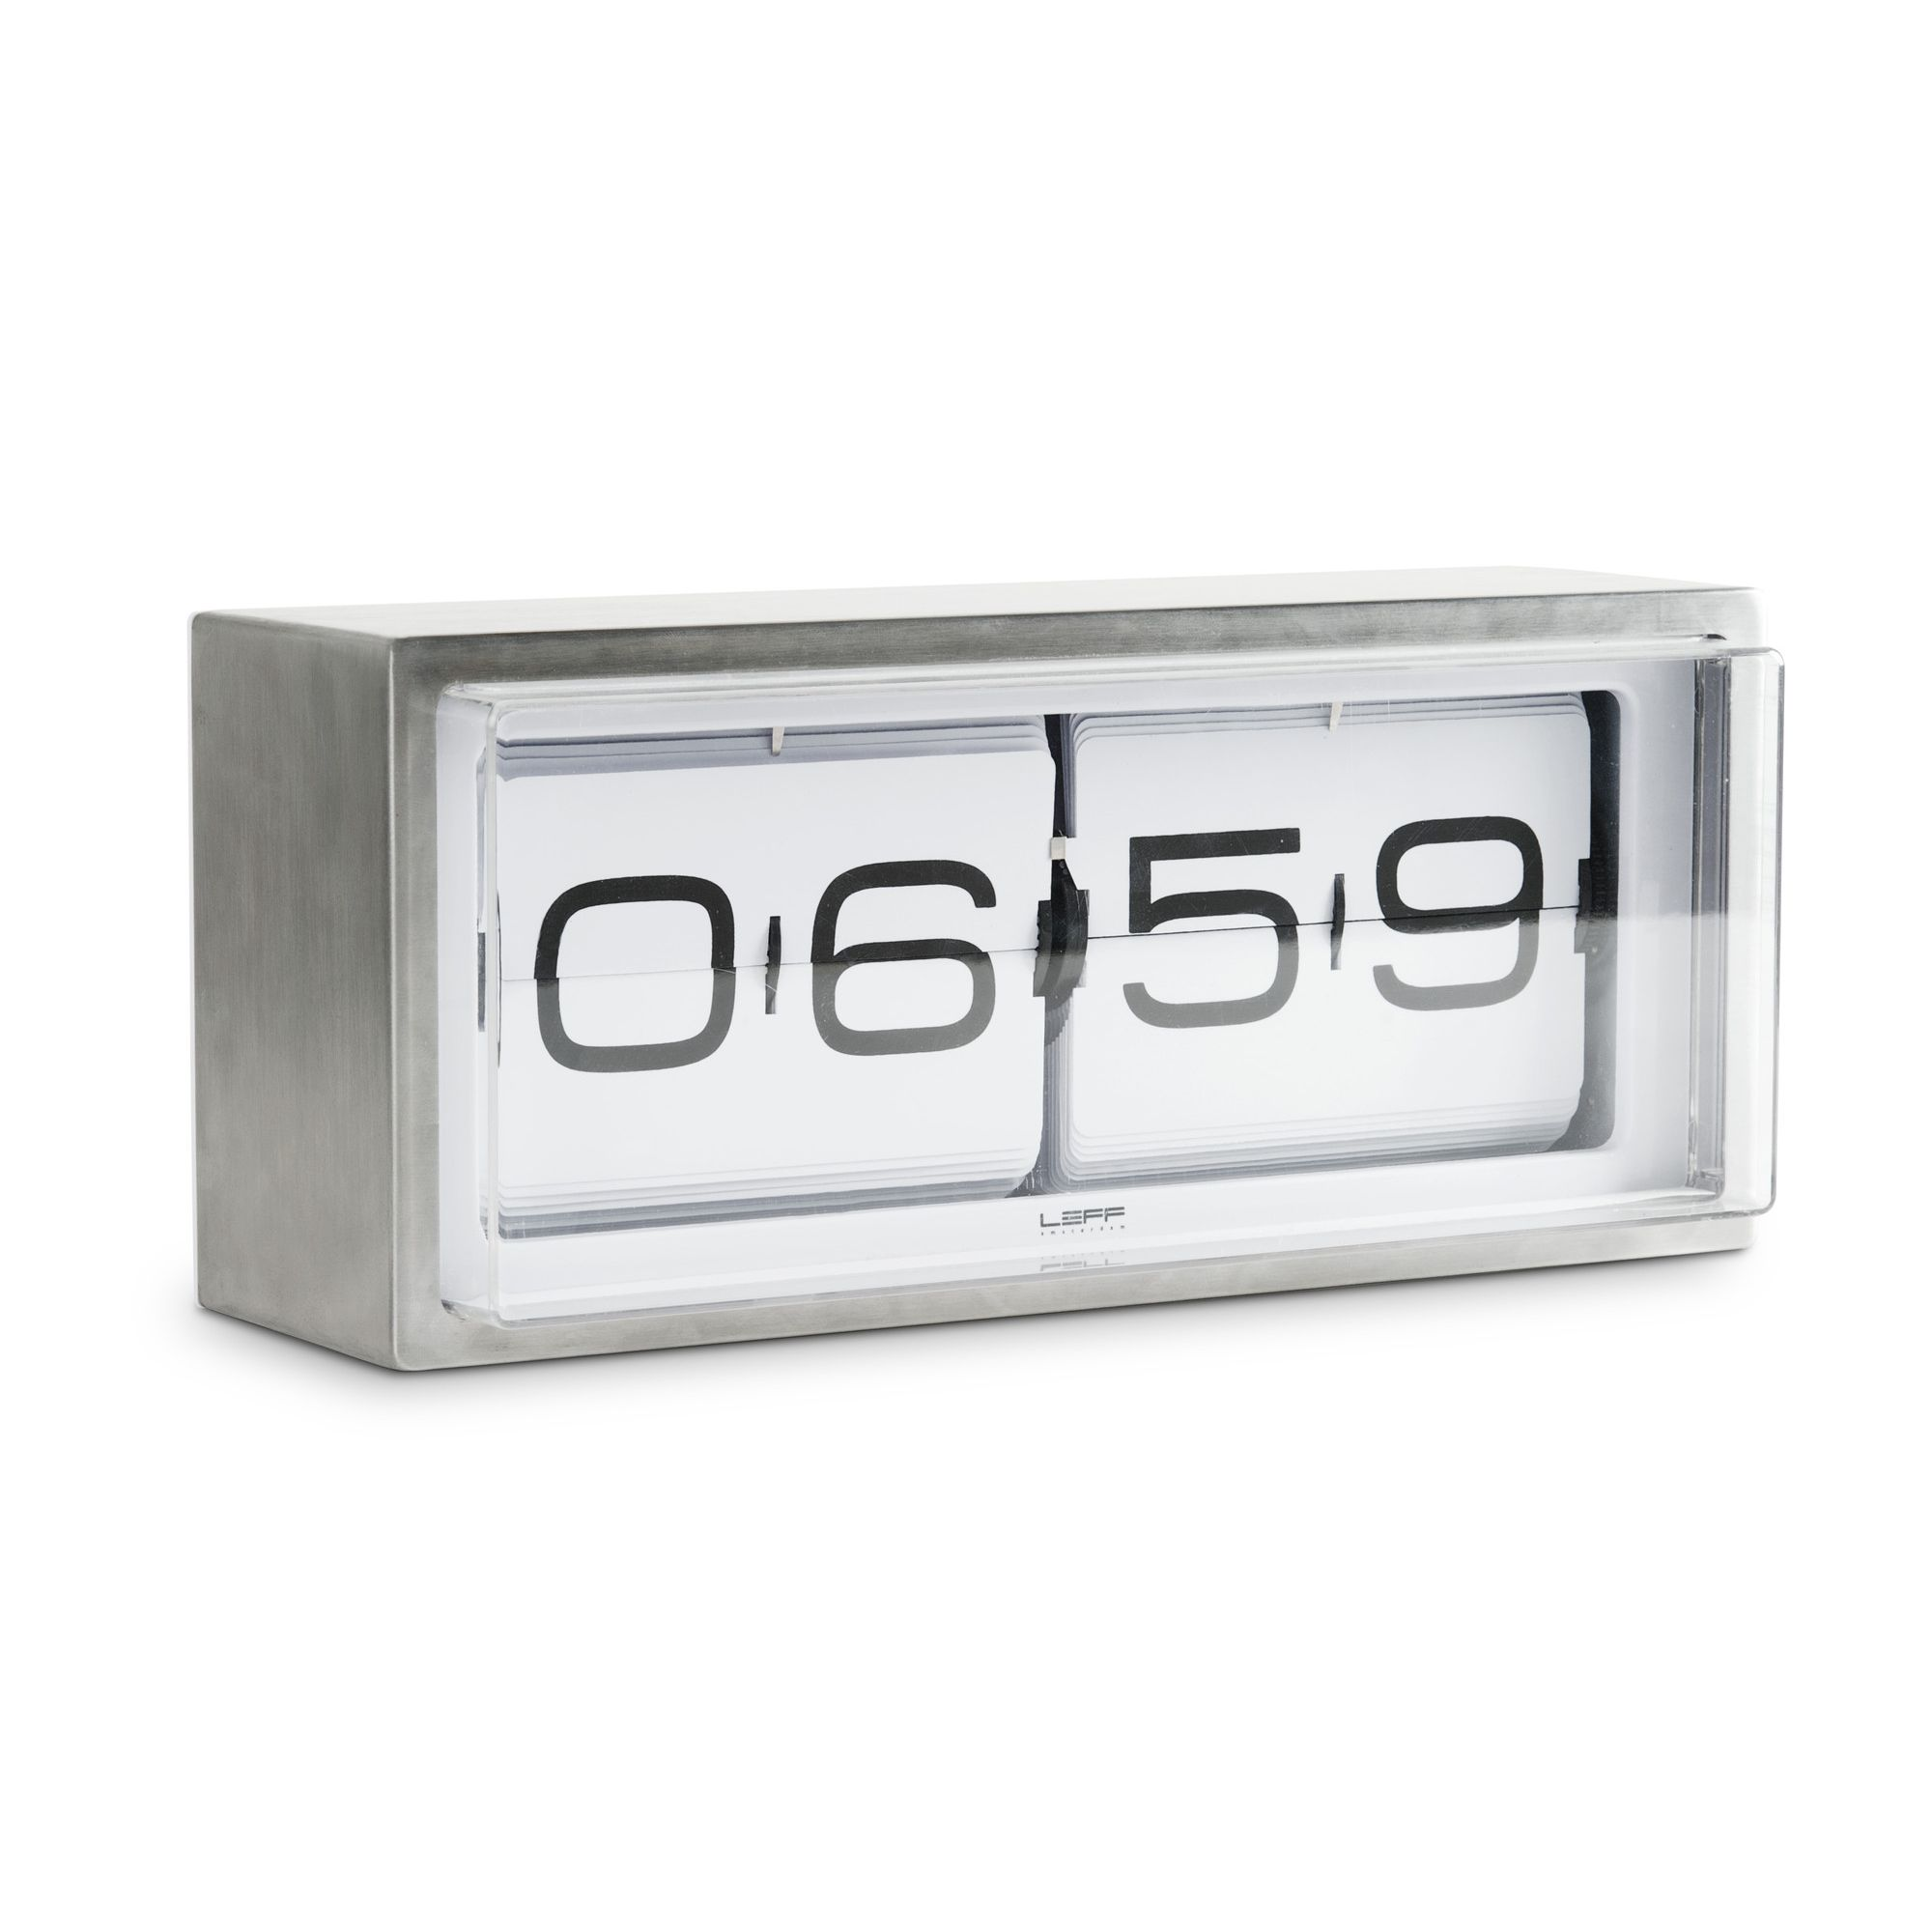 Leff Brick Wall/Desk Clock with White Dial in Grey Stainless Steel - 24Hr at Tesco Direct